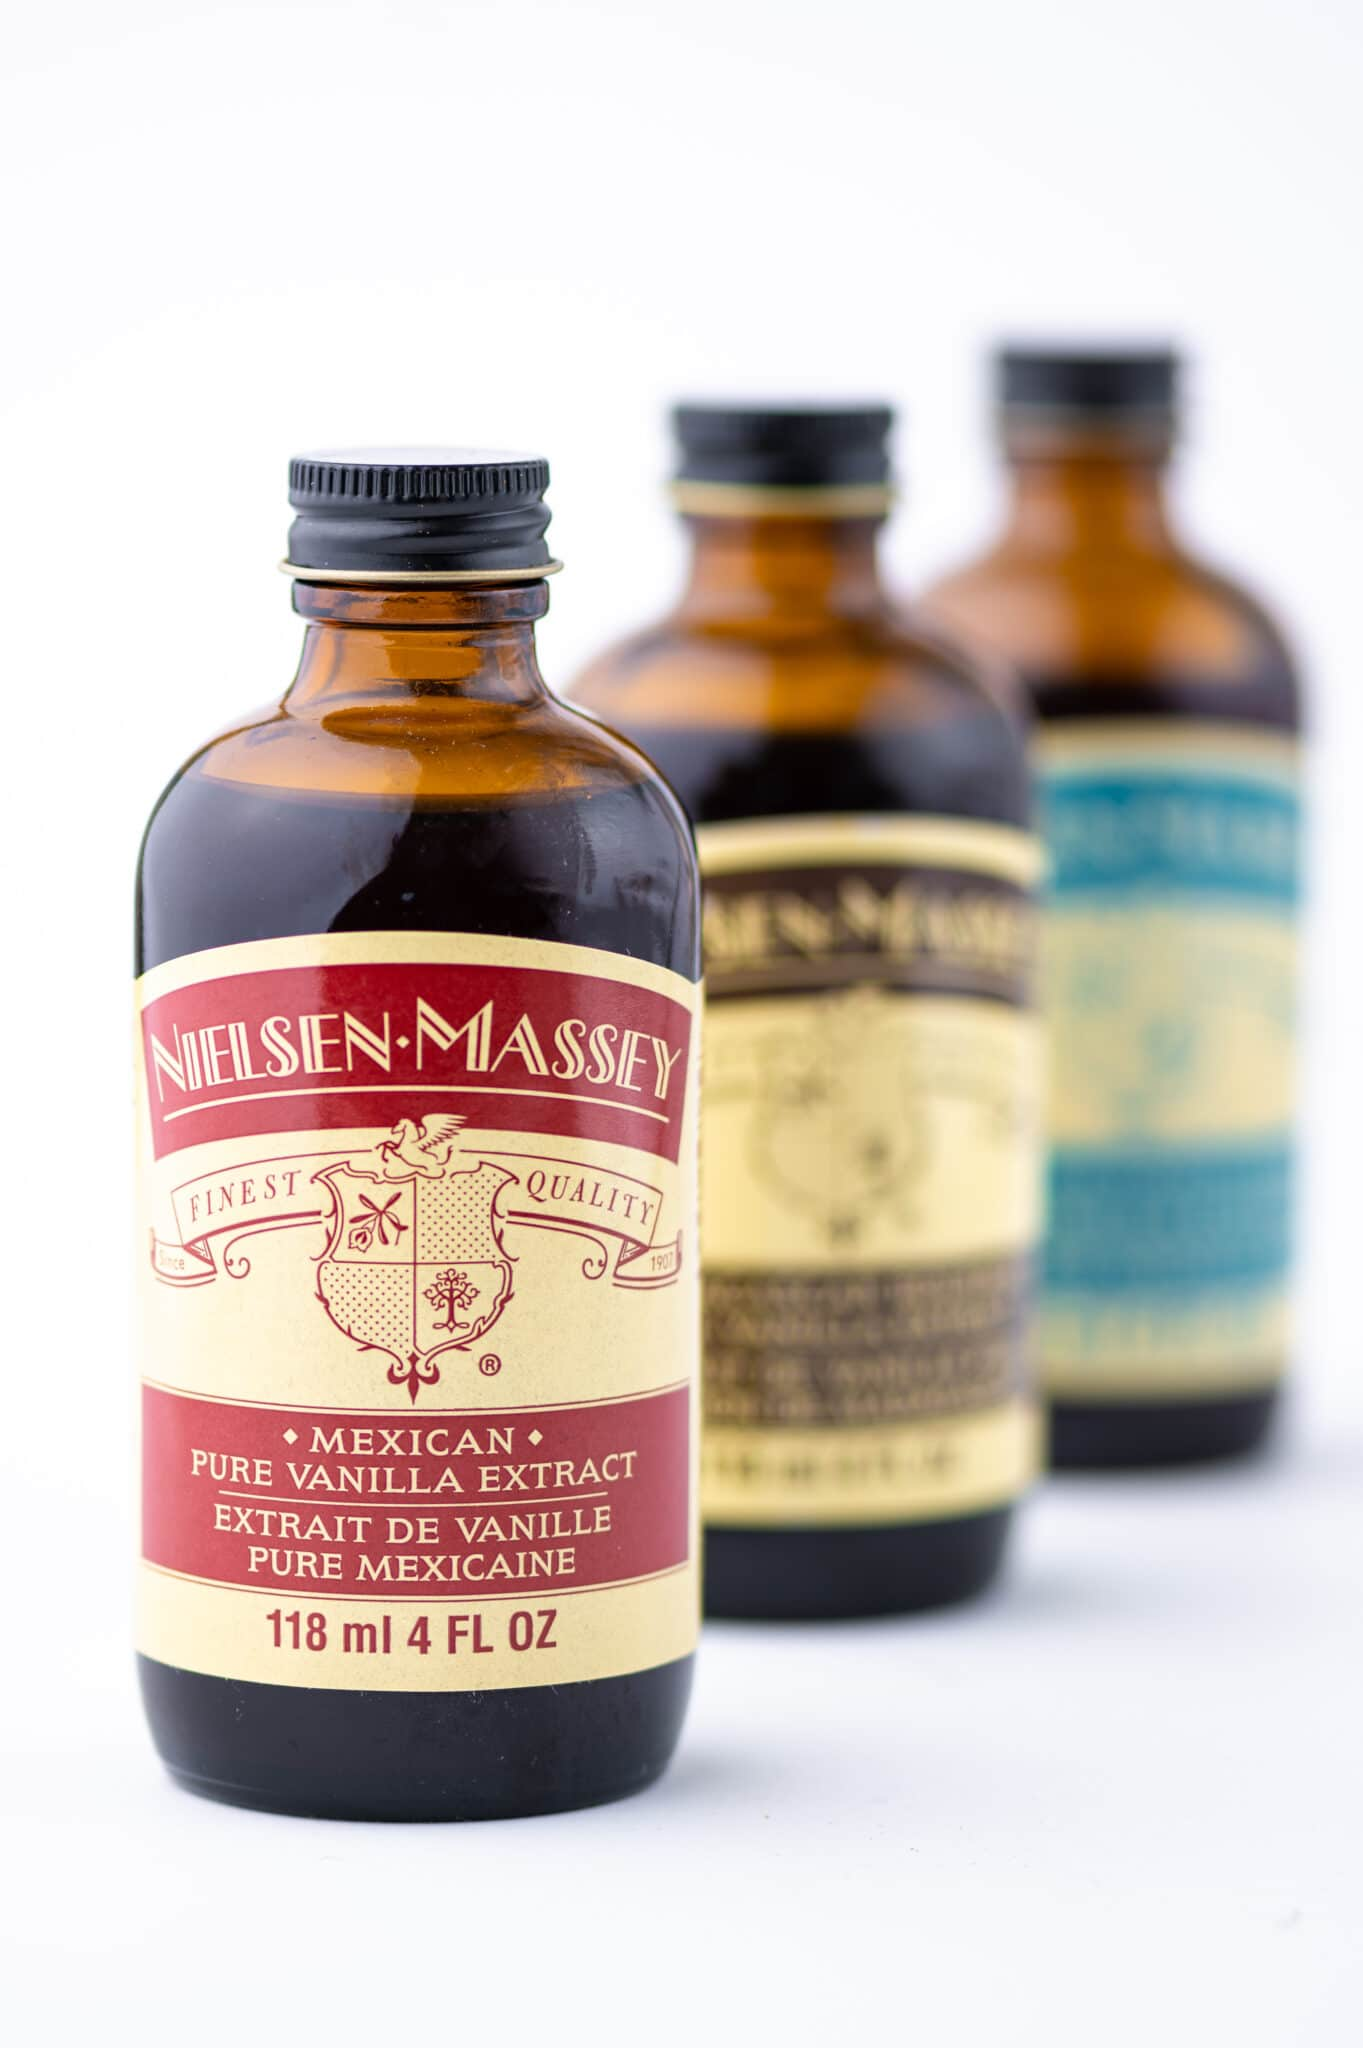 Three different bottles of vanilla against a bright white background.